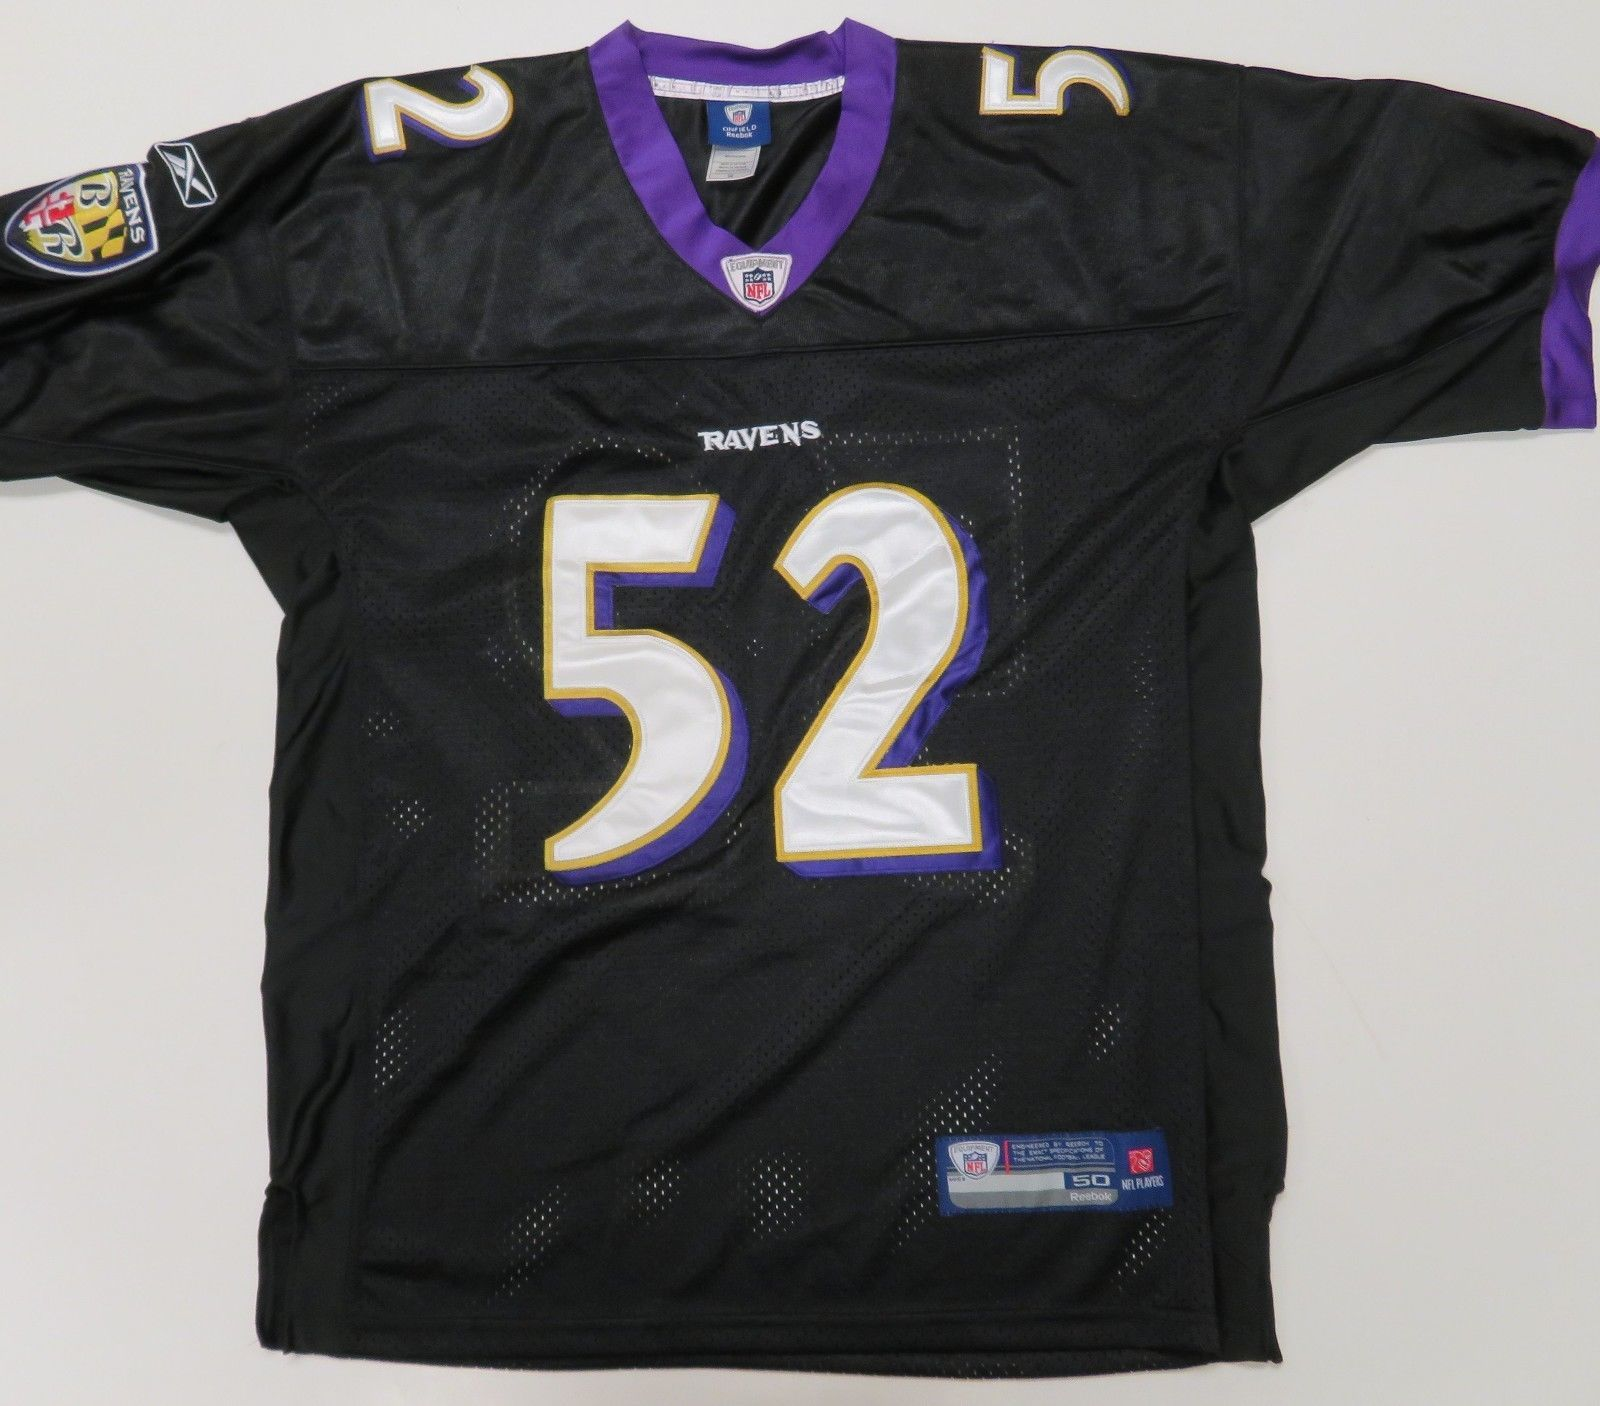 Reebok Baltimore Ravens  52 Ray Lewis Jersey and 50 similar items 1ba3708b9